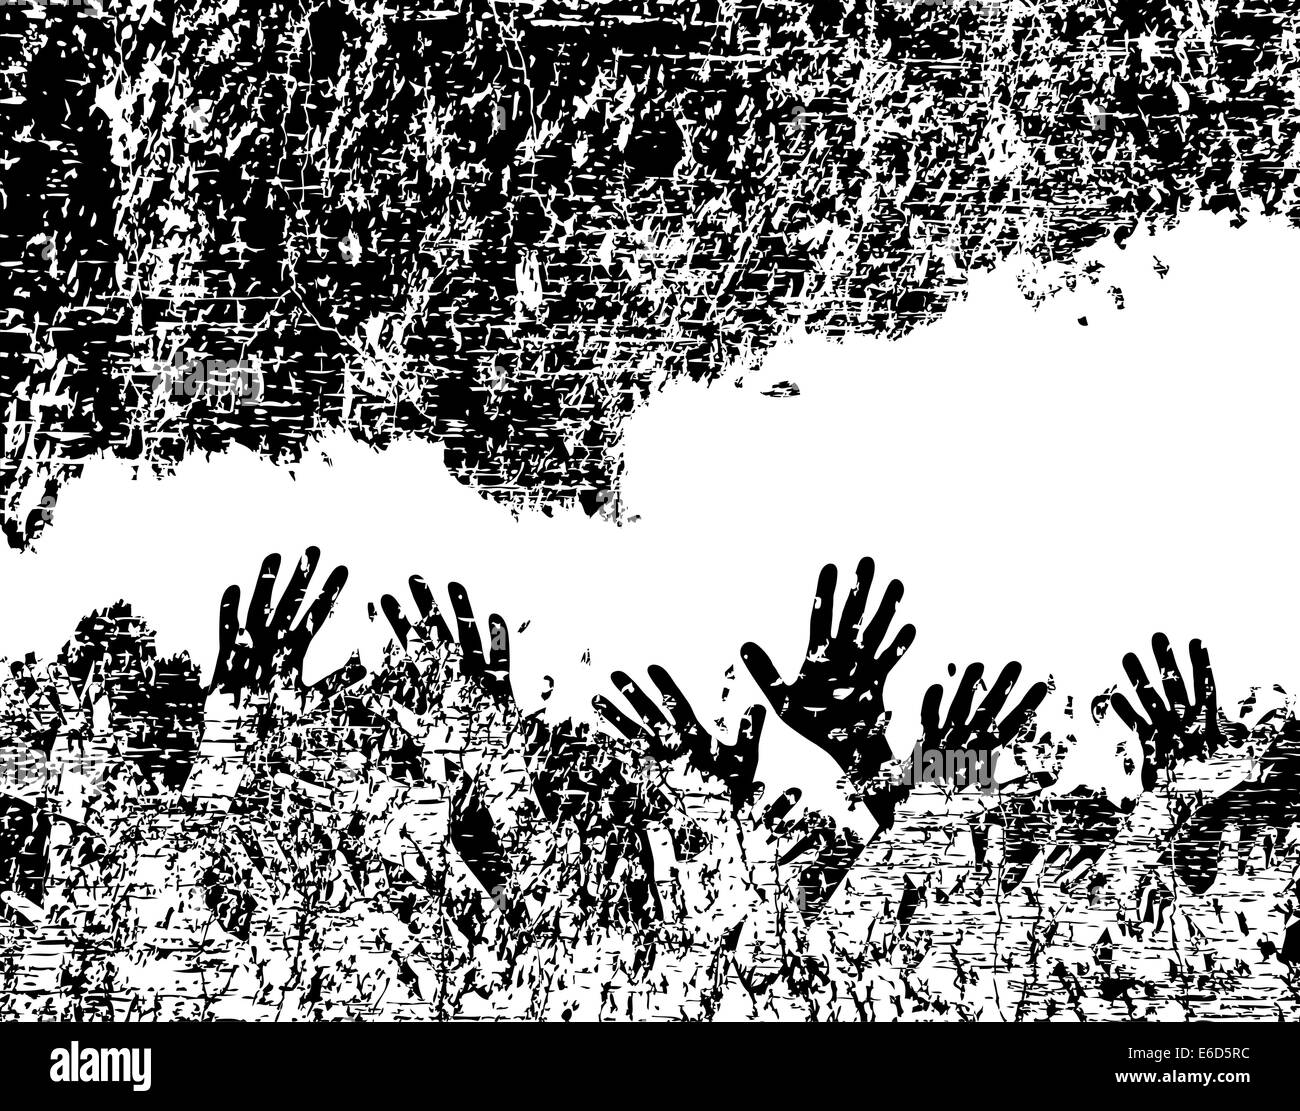 Background editable vector illustration of hands in a rock crevice - Stock Vector